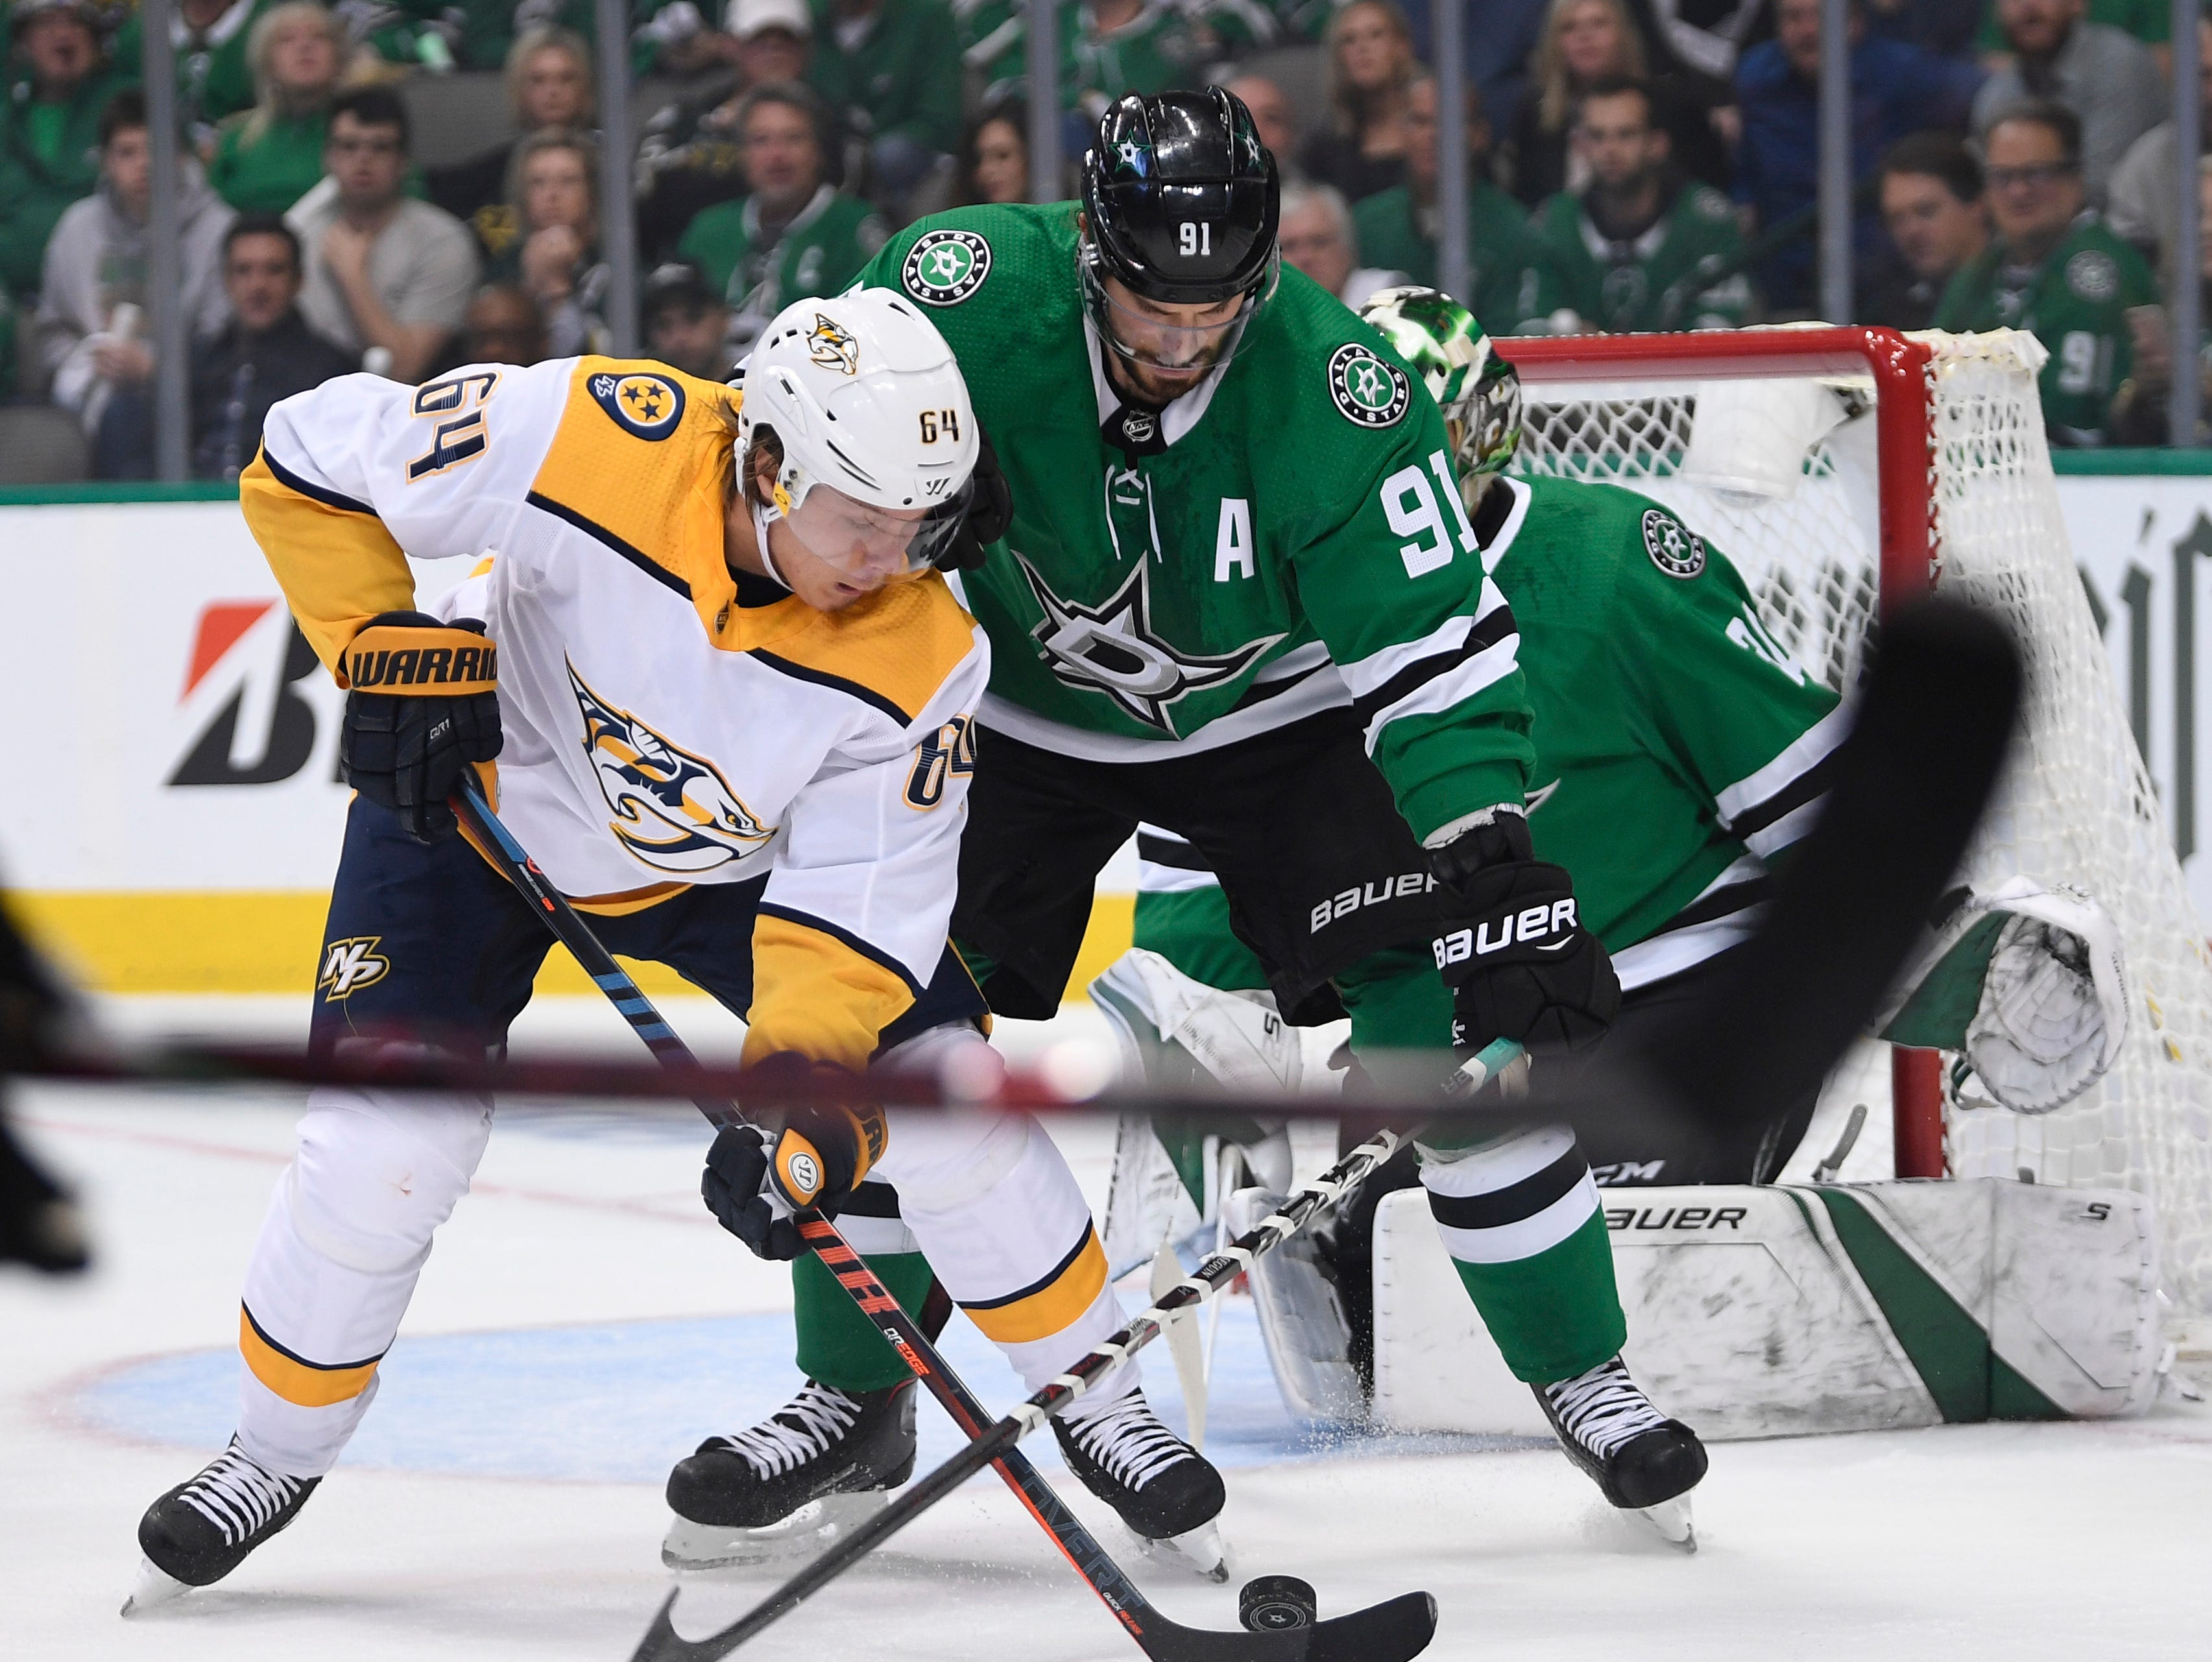 Nashville Predators center Mikael Granlund (64) moves the puck defended by Dallas Stars center Tyler Seguin (91) during the first period of the divisional semifinal game at the American Airlines Center in Dallas, Texas., Monday, April 15, 2019.